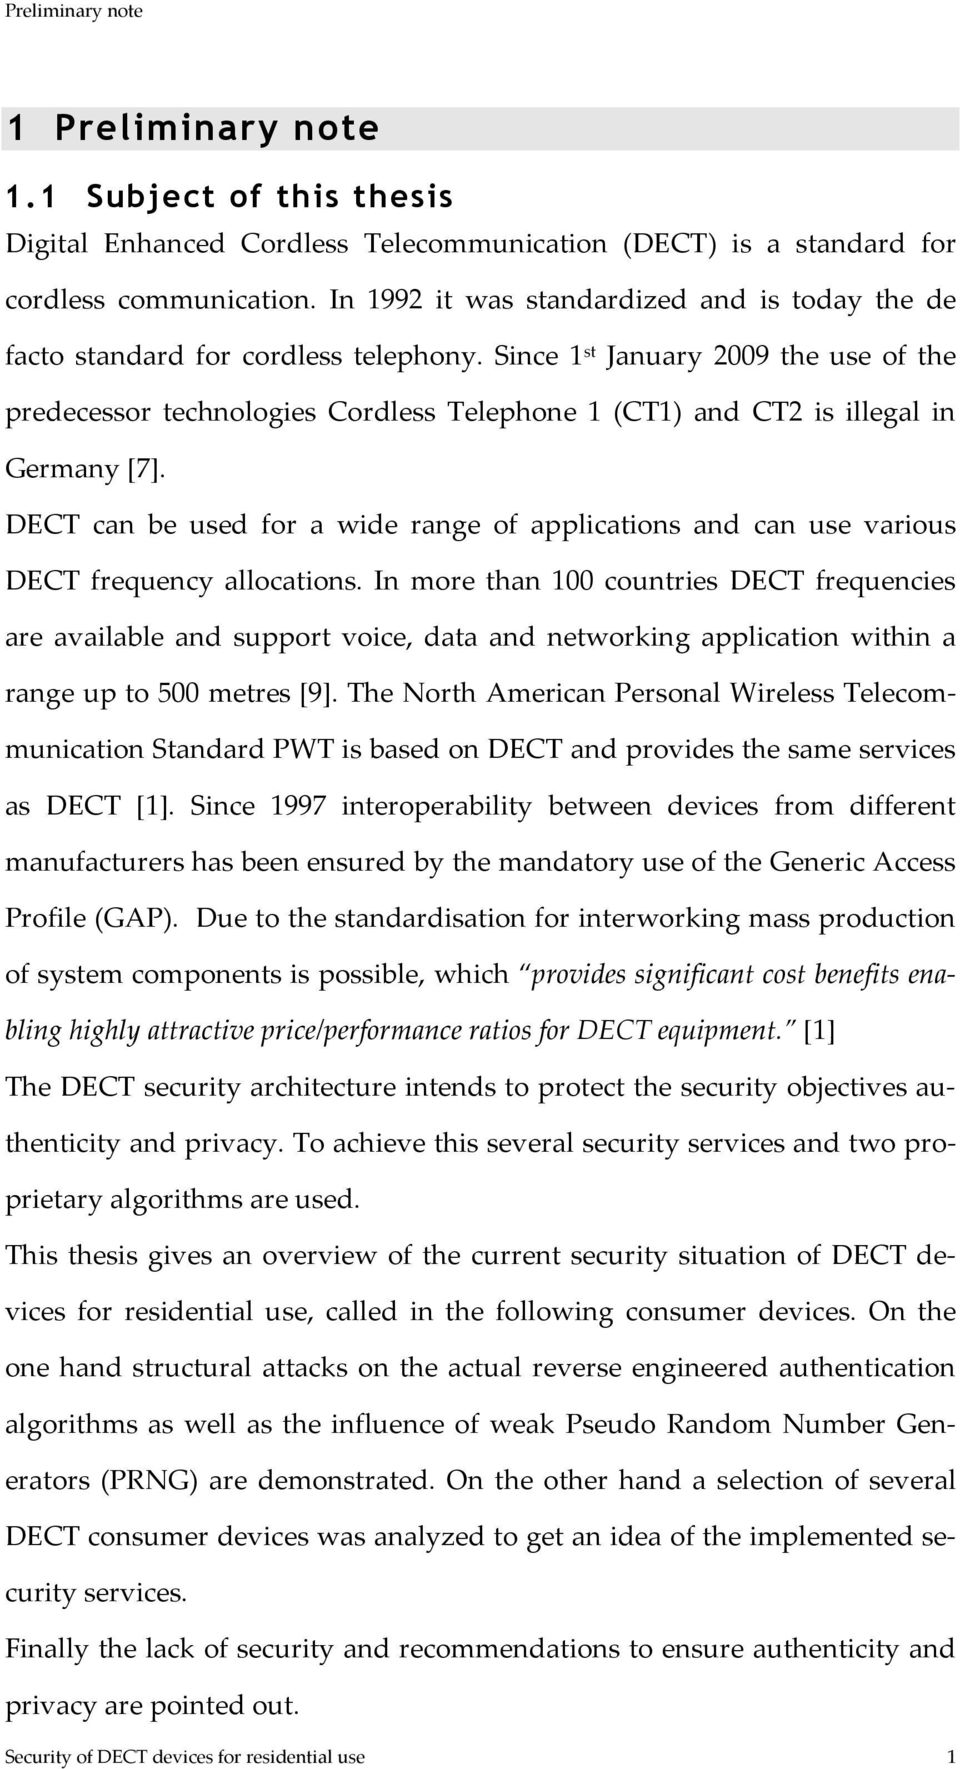 Since 1 st January 2009 the use of the predecessor technologies Cordless Telephone 1 (CT1) and CT2 is illegal in Germany [7].